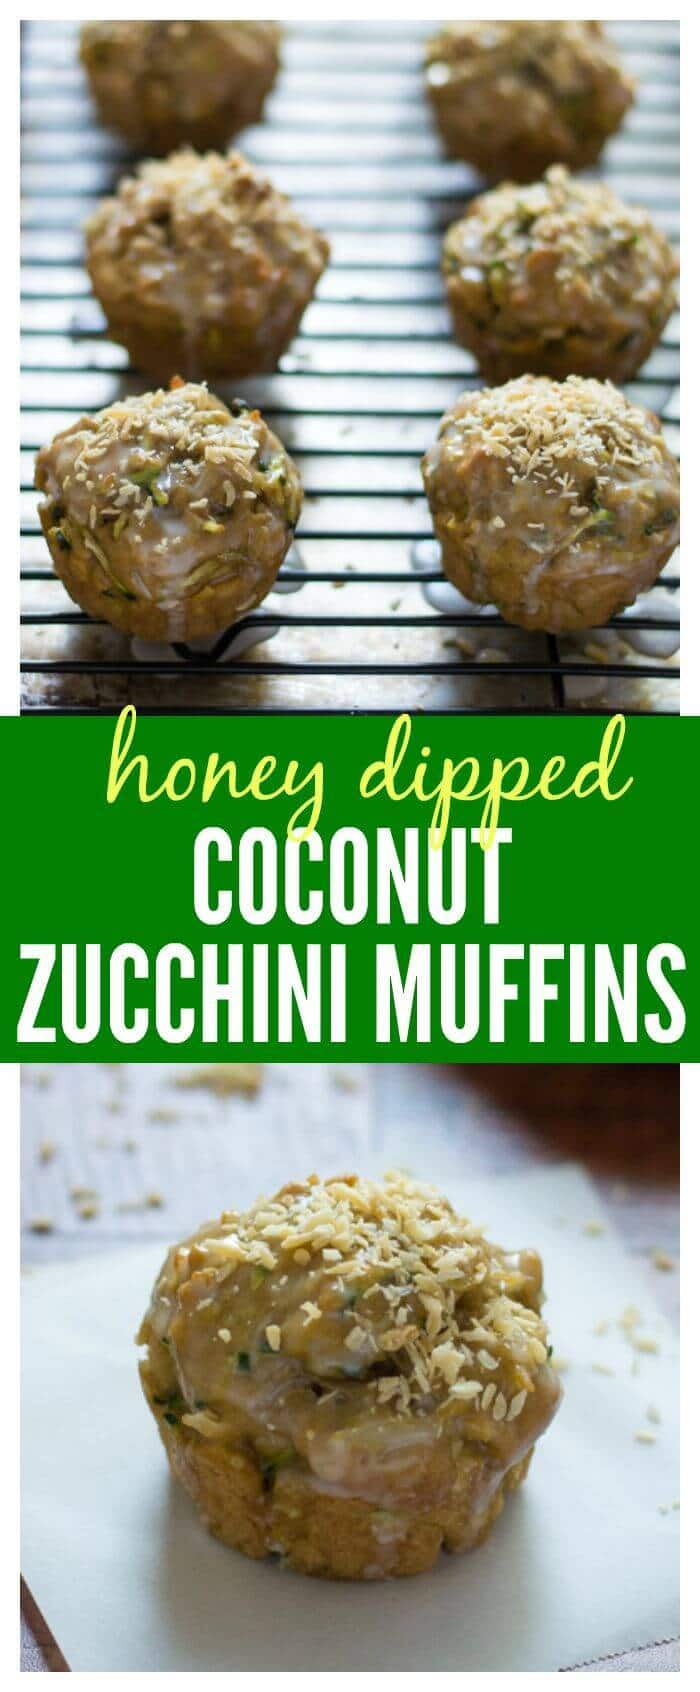 Healthy Coconut Zucchini Muffins made with coconut oil and dipped in a honey glaze